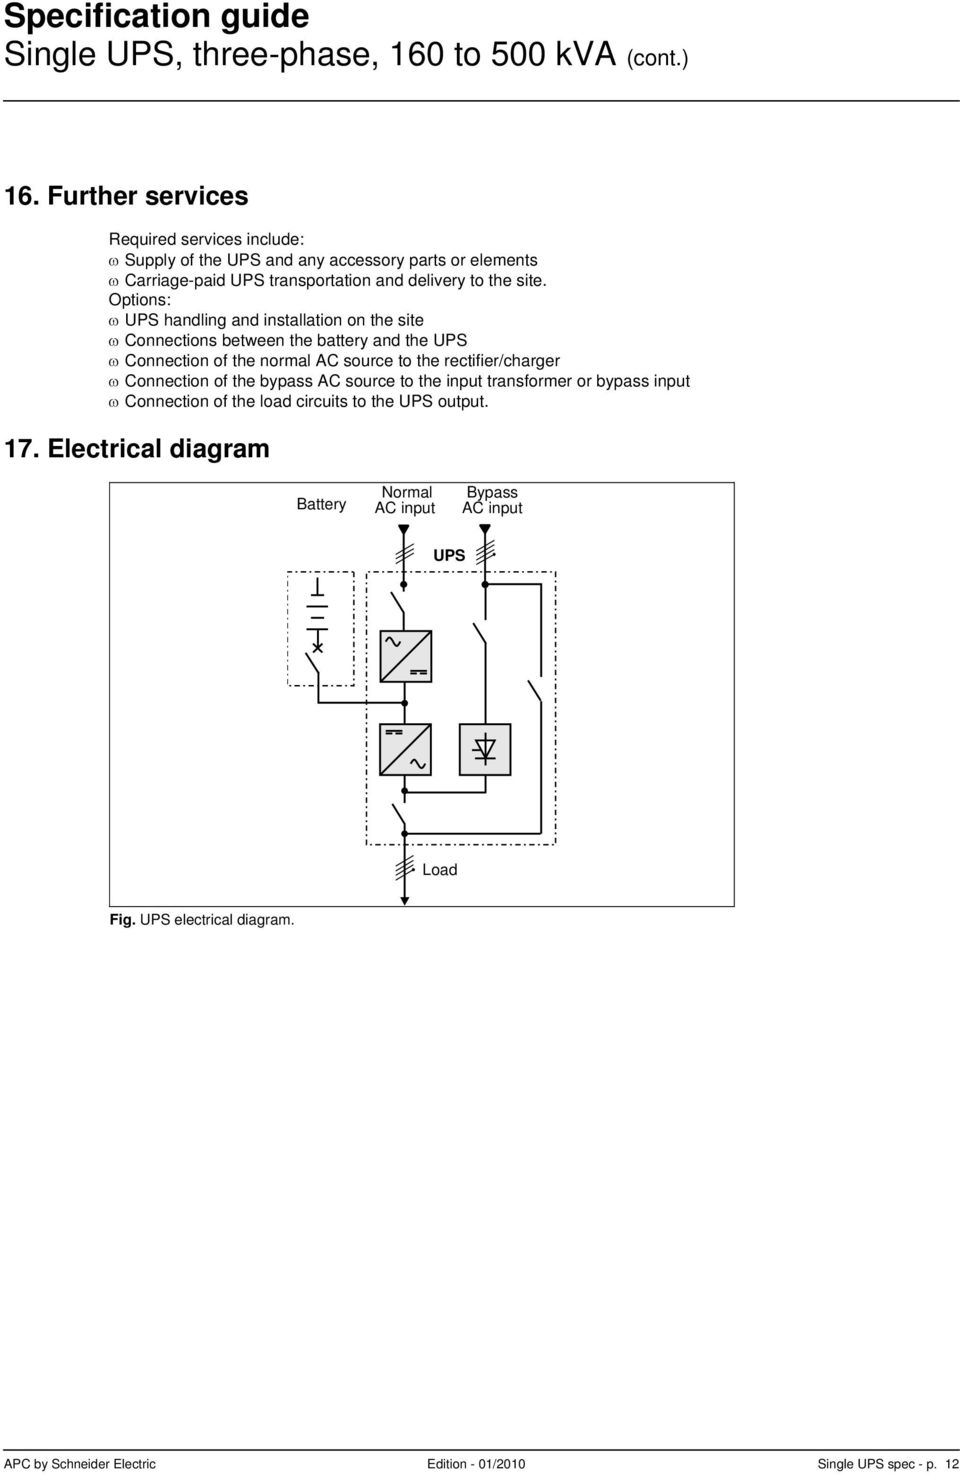 Apc Matrix 500 Wiring Diagram Library Parts List For Model 502254260 Craftsman Options Ups Handling And Installation On The Site Connections Between Battery